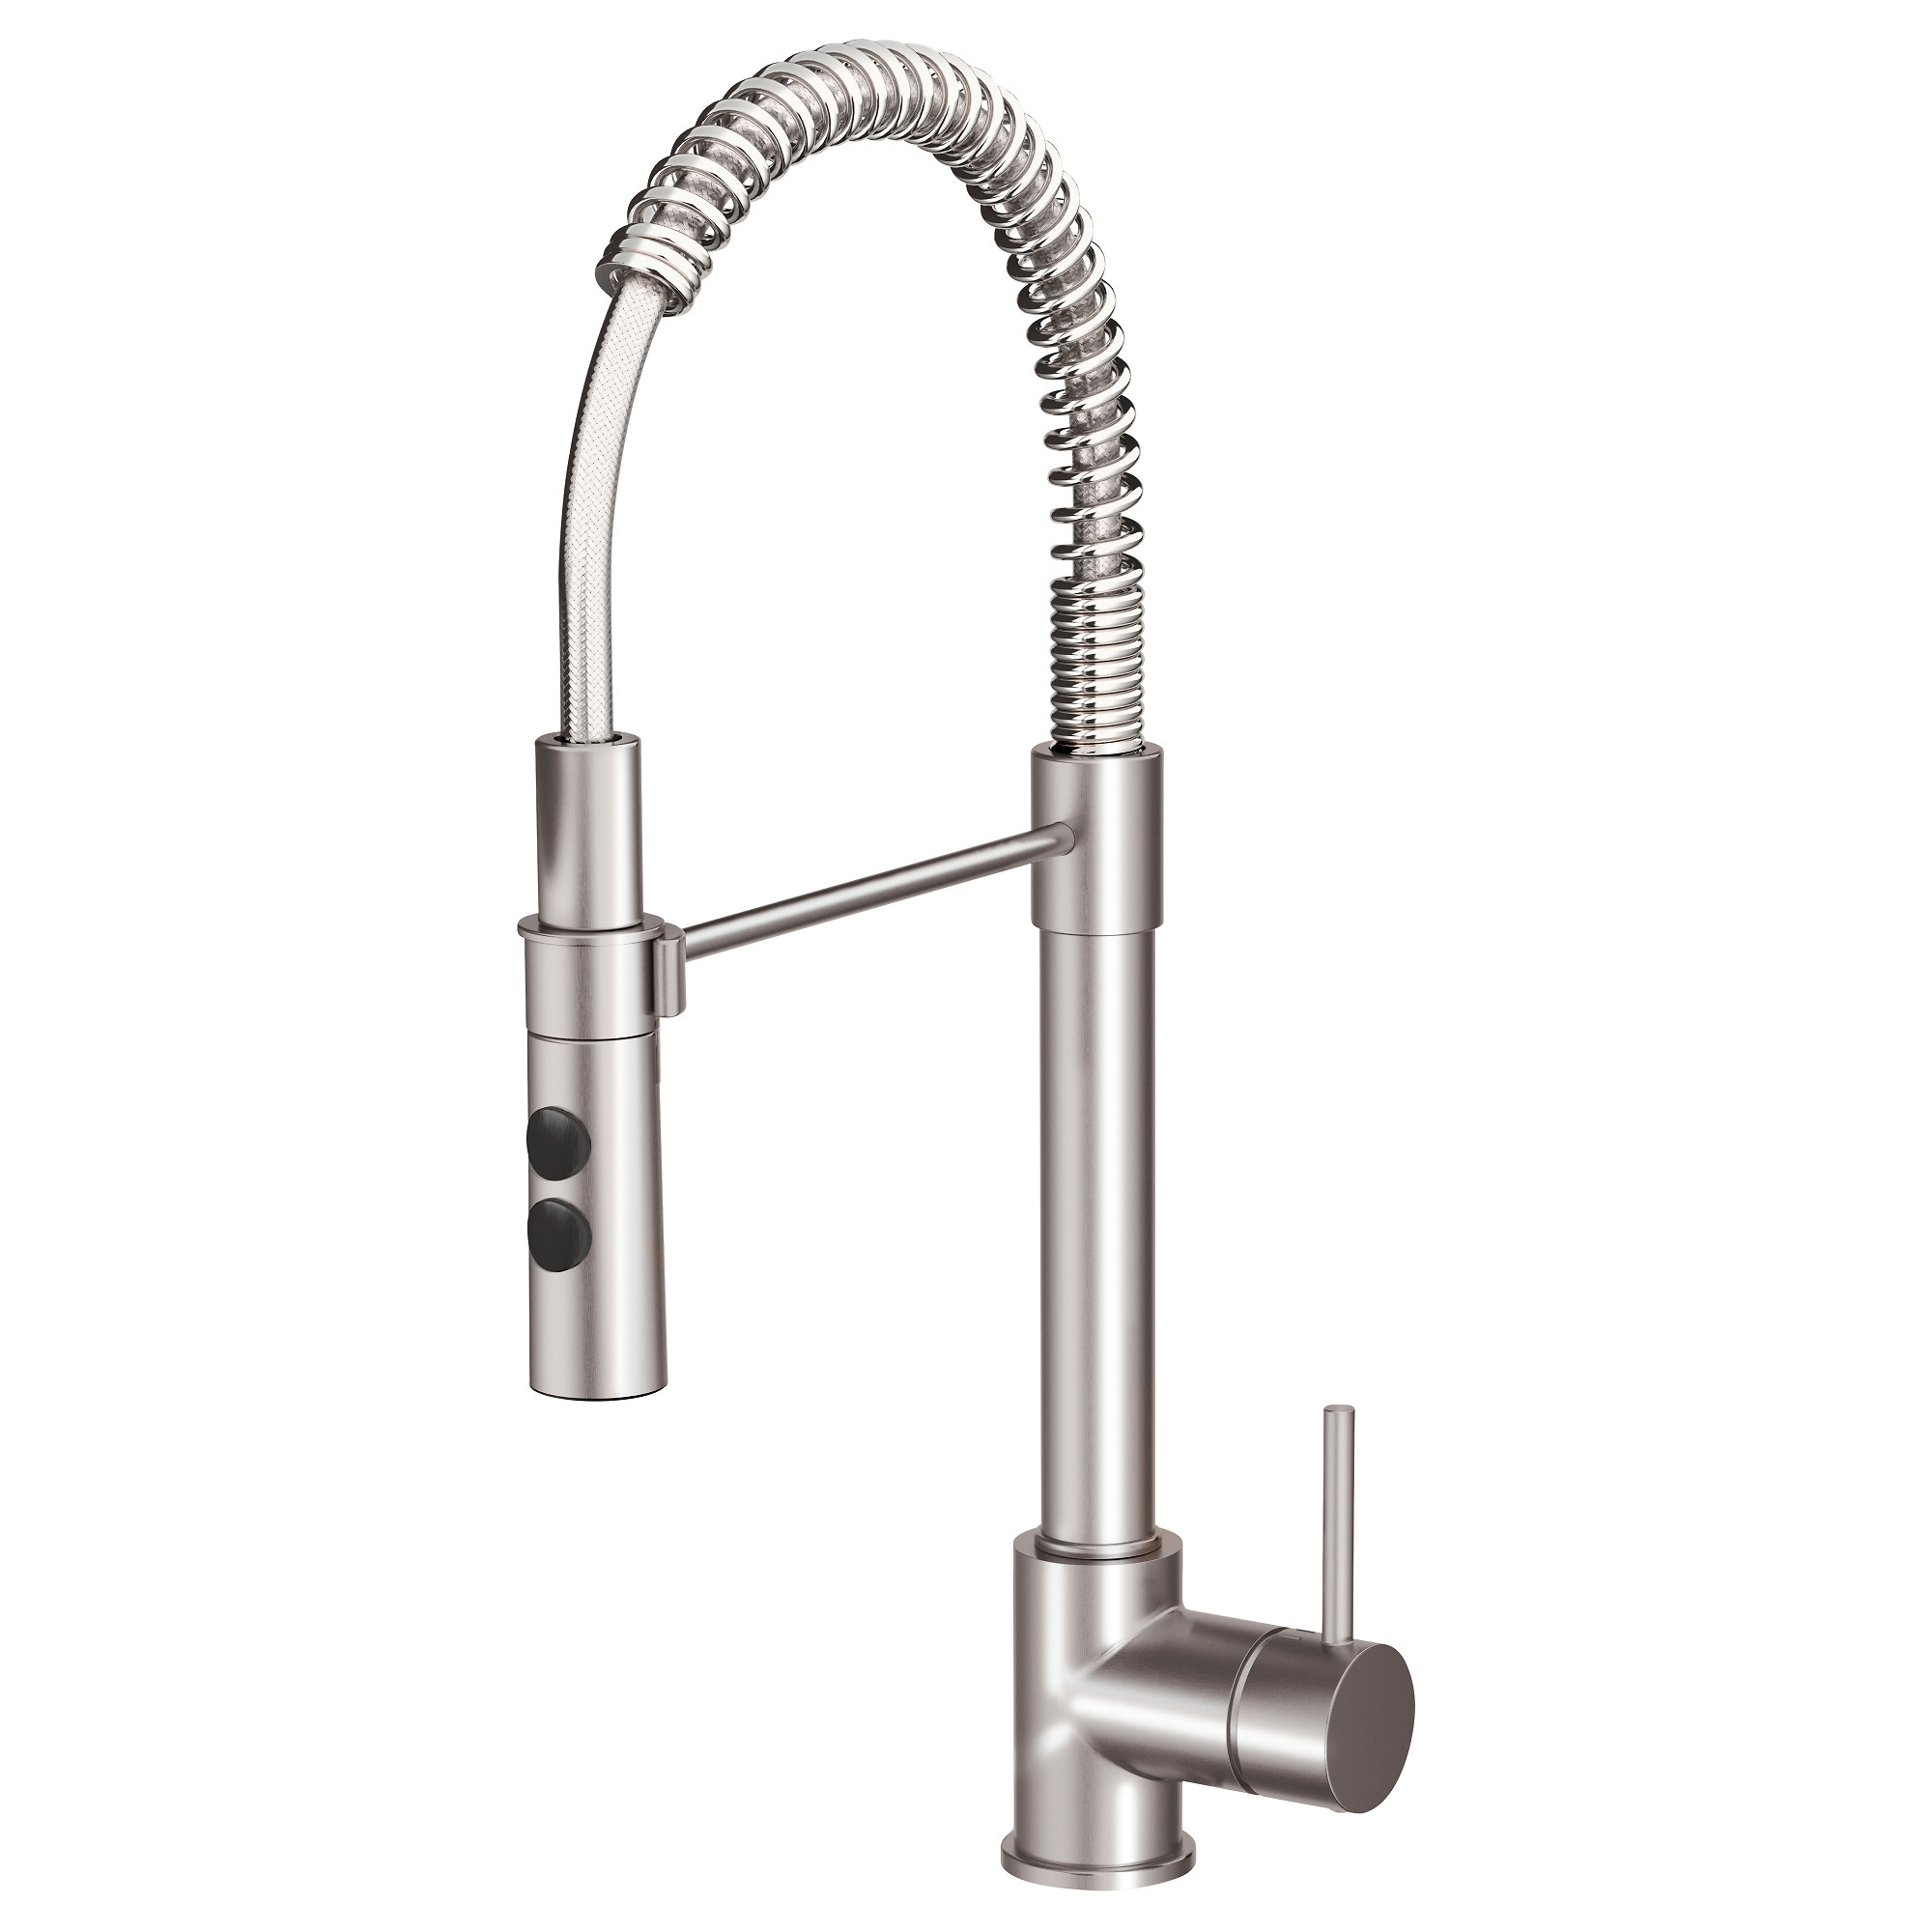 Kitchen Faucet vimmern kitchen faucet with handspray - ikea